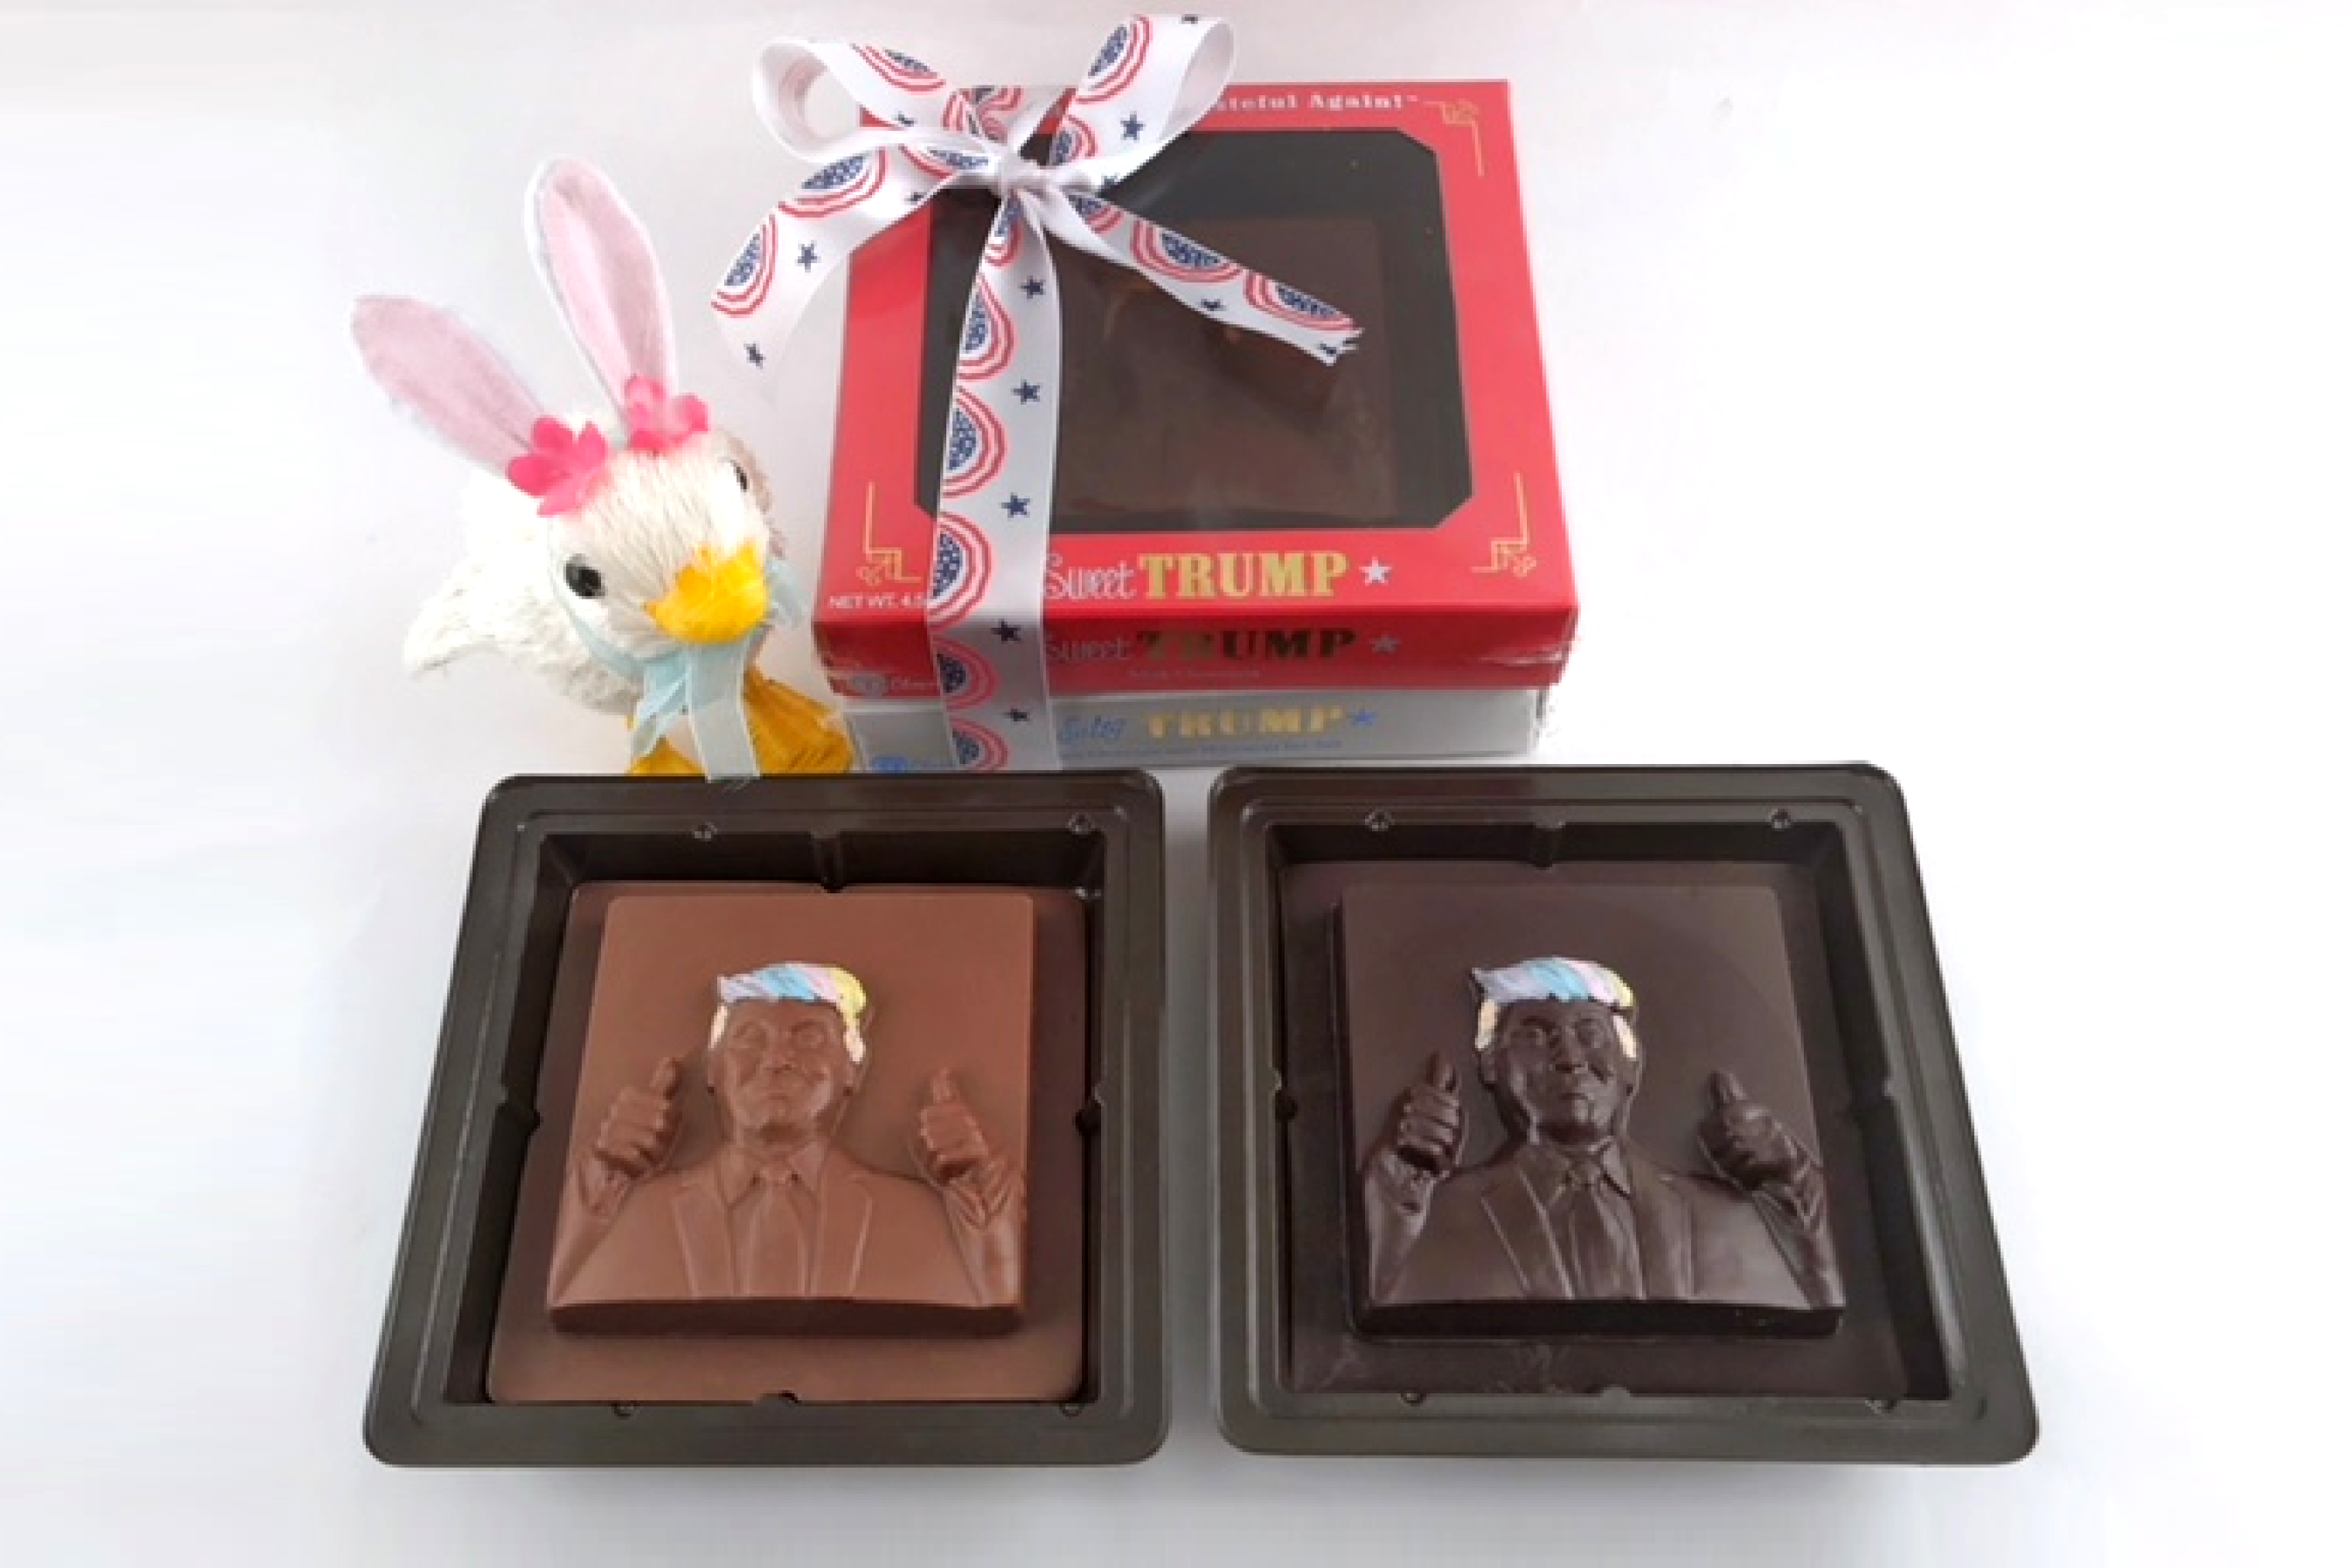 Chocolate Text - <b>SPRING IS IN THE HAIR! - Make America Tasteful Again!™</b> - Salty Trump & Sweet Trump - 2 piece Solid chocolate set